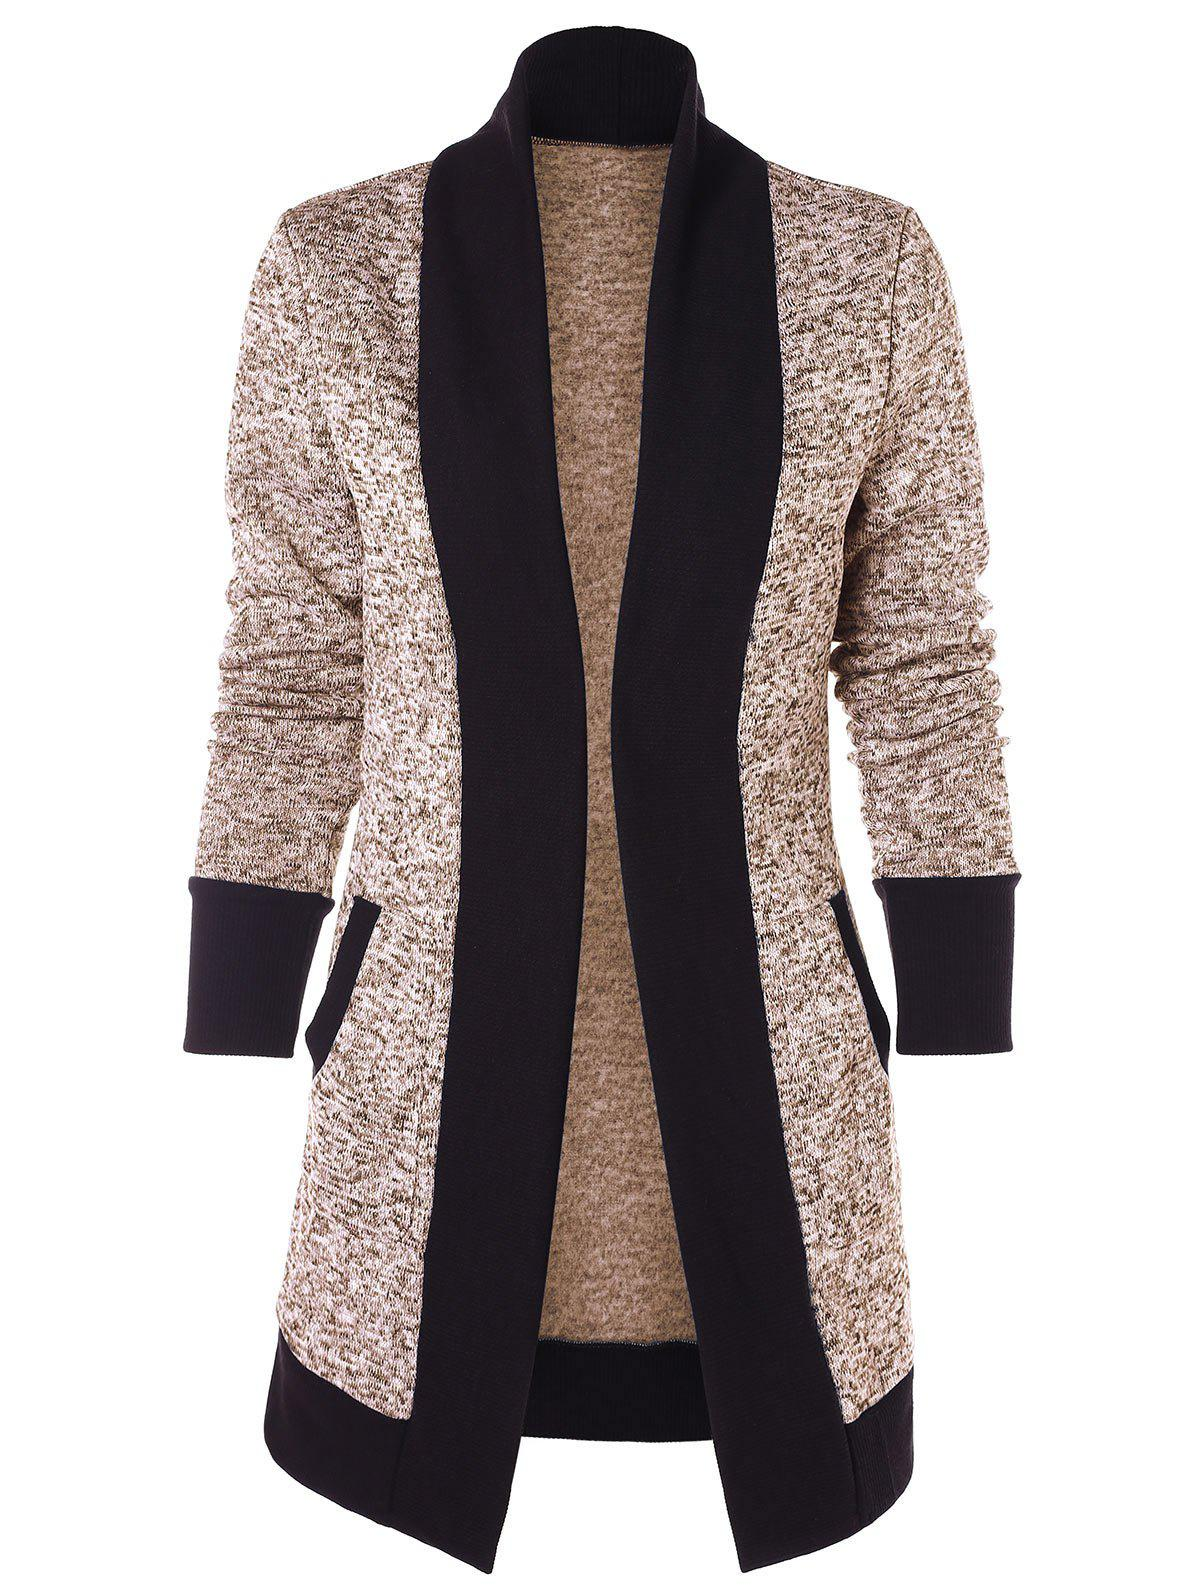 Hot Two Tone Knit Cardigan